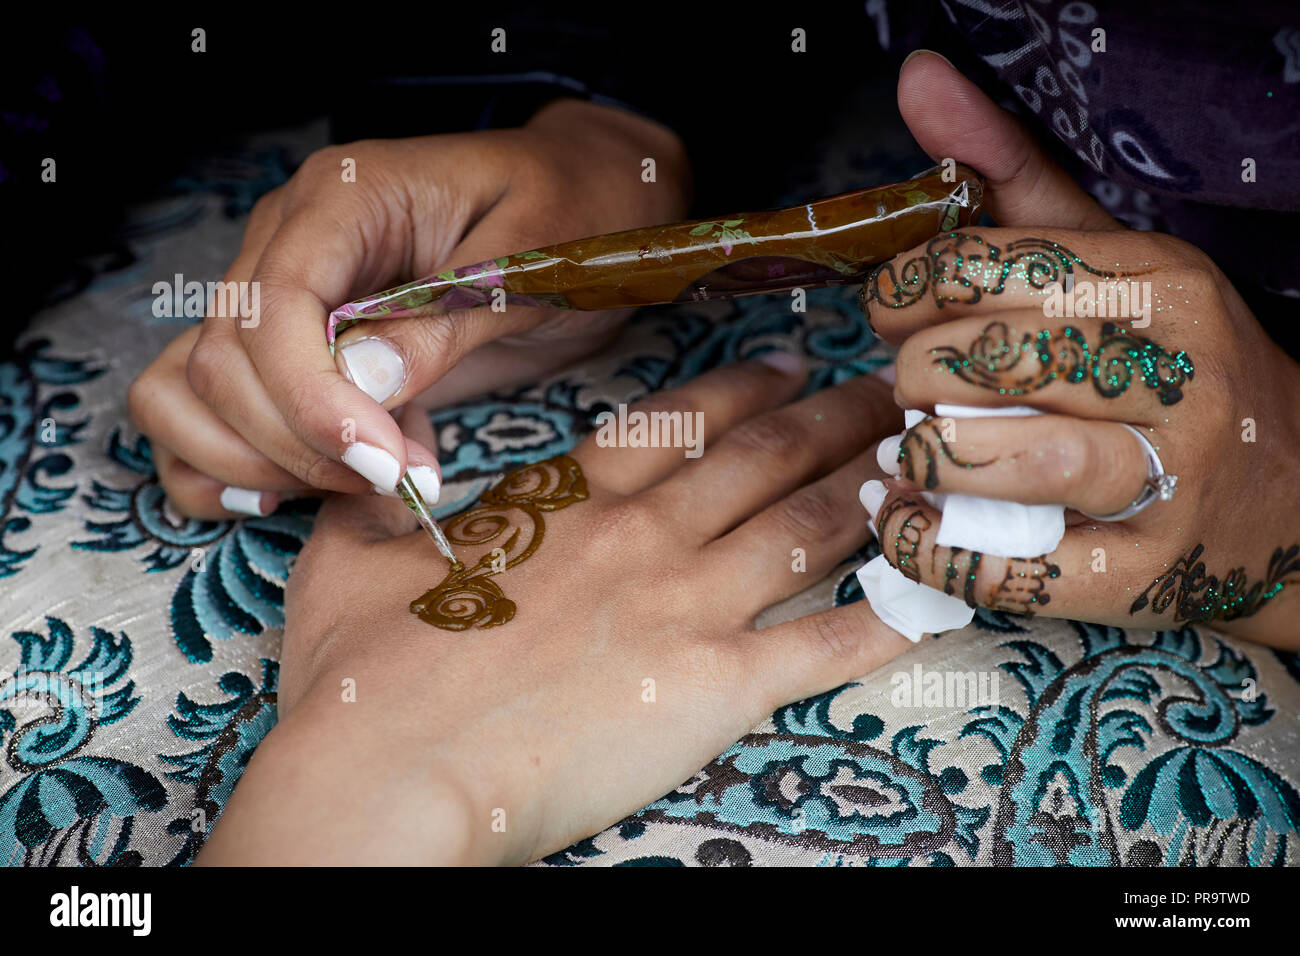 Hemp Tattoo, henna tattooing from the plants dried leaves - Stock Image